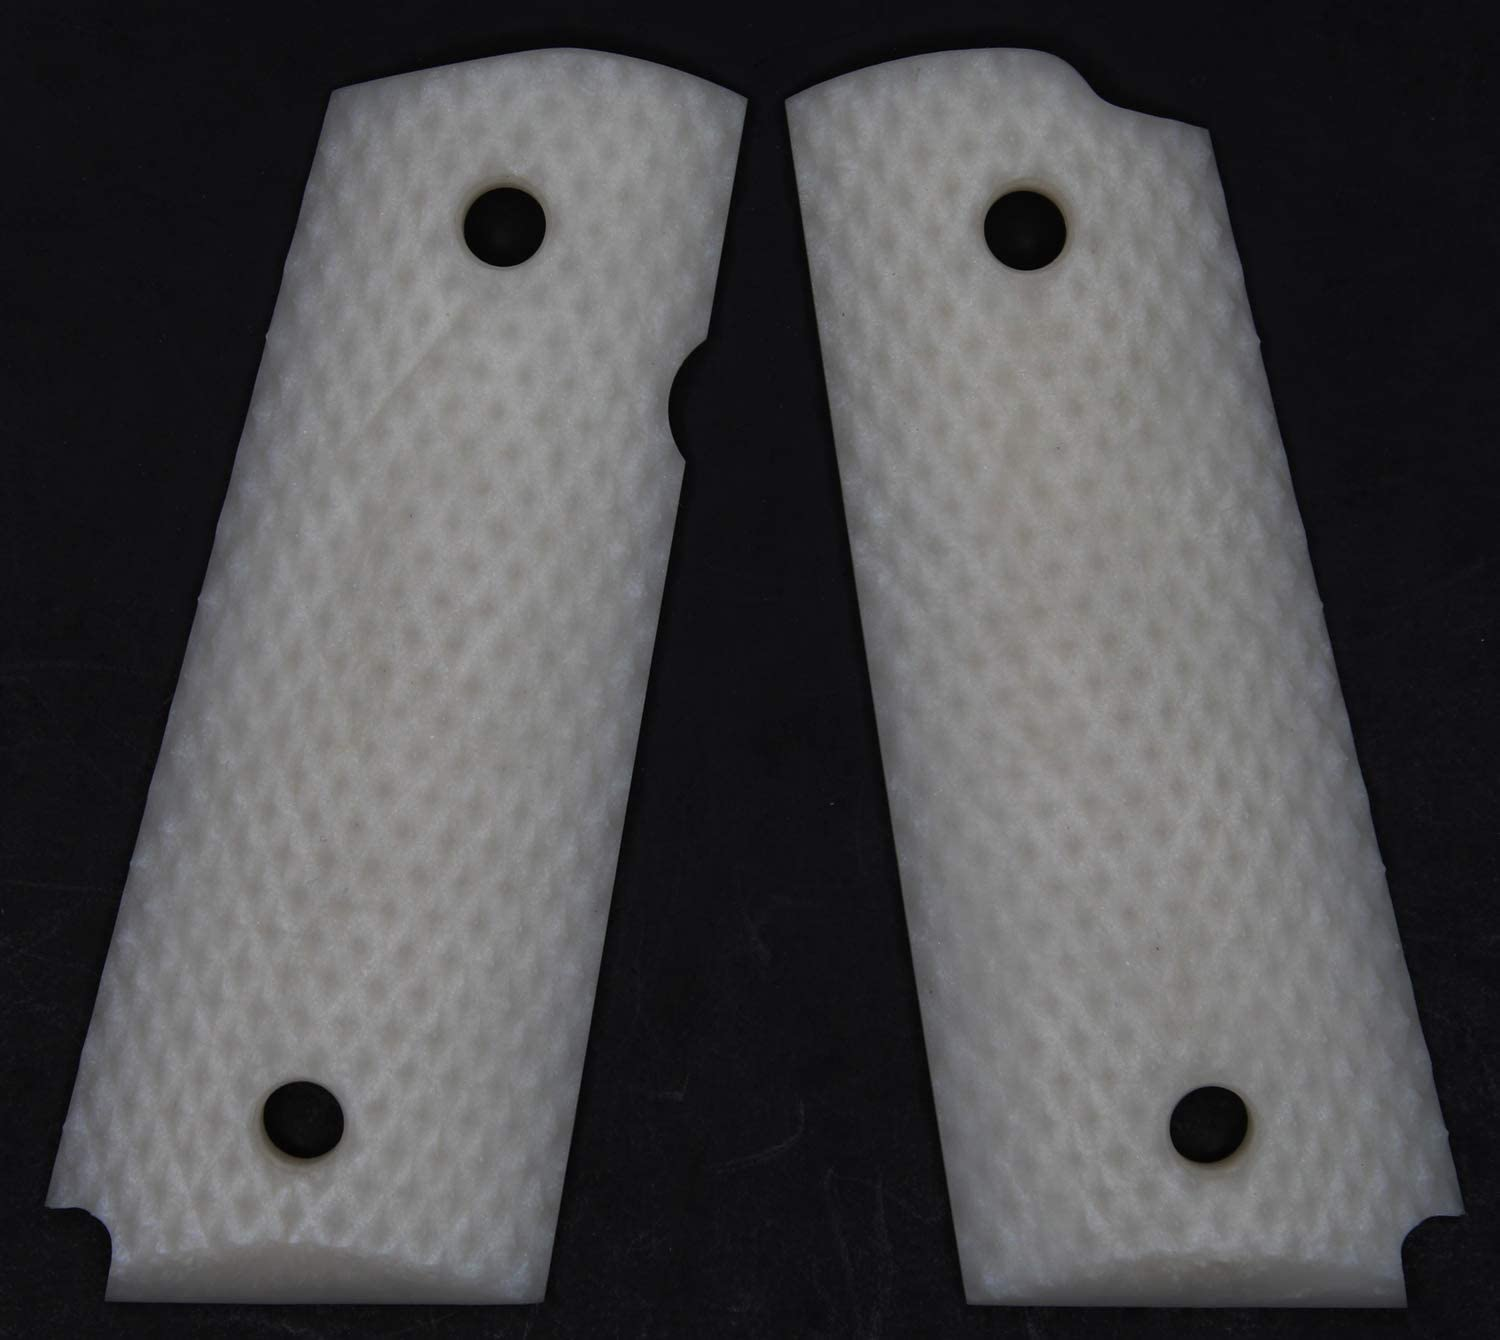 DURAGRIPS - Compact Officers 1911 Texture Tactical Grips Full Max 88% Virginia Beach Mall OFF